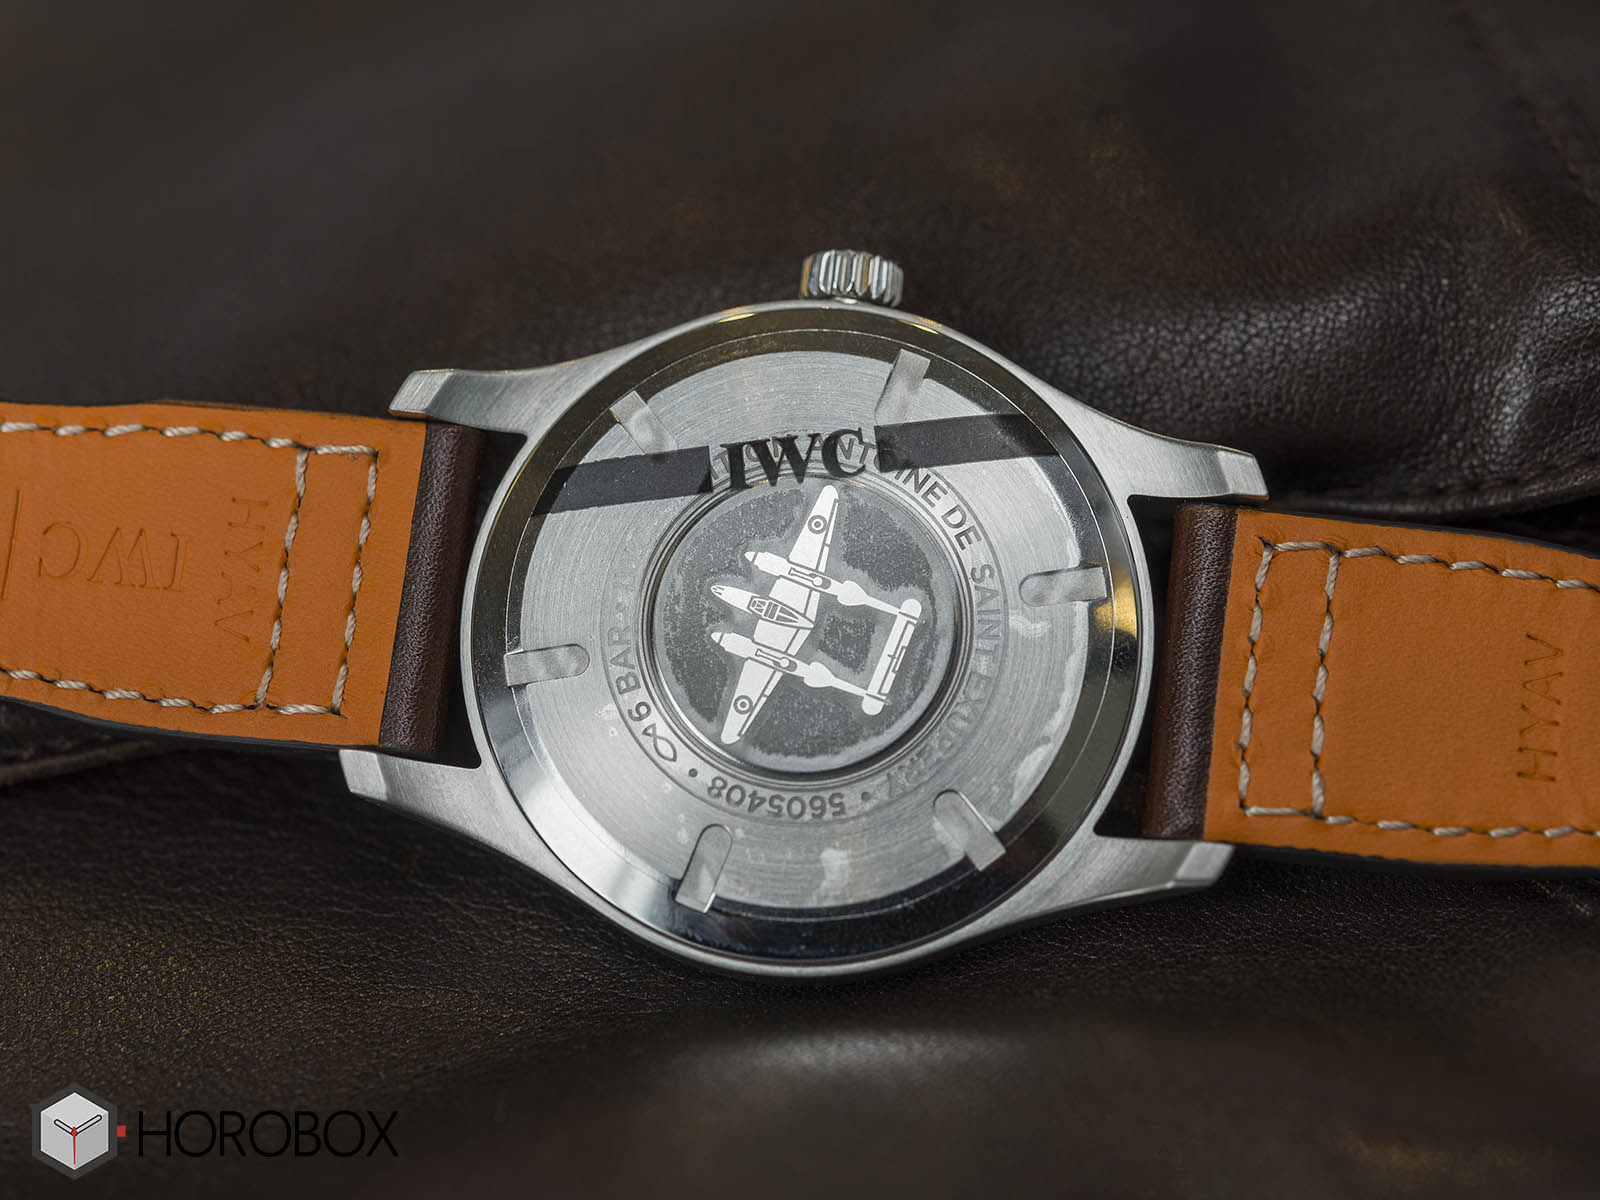 iwc-pilots-watch-mark-xviii-edition-iw327003-8-.jpg